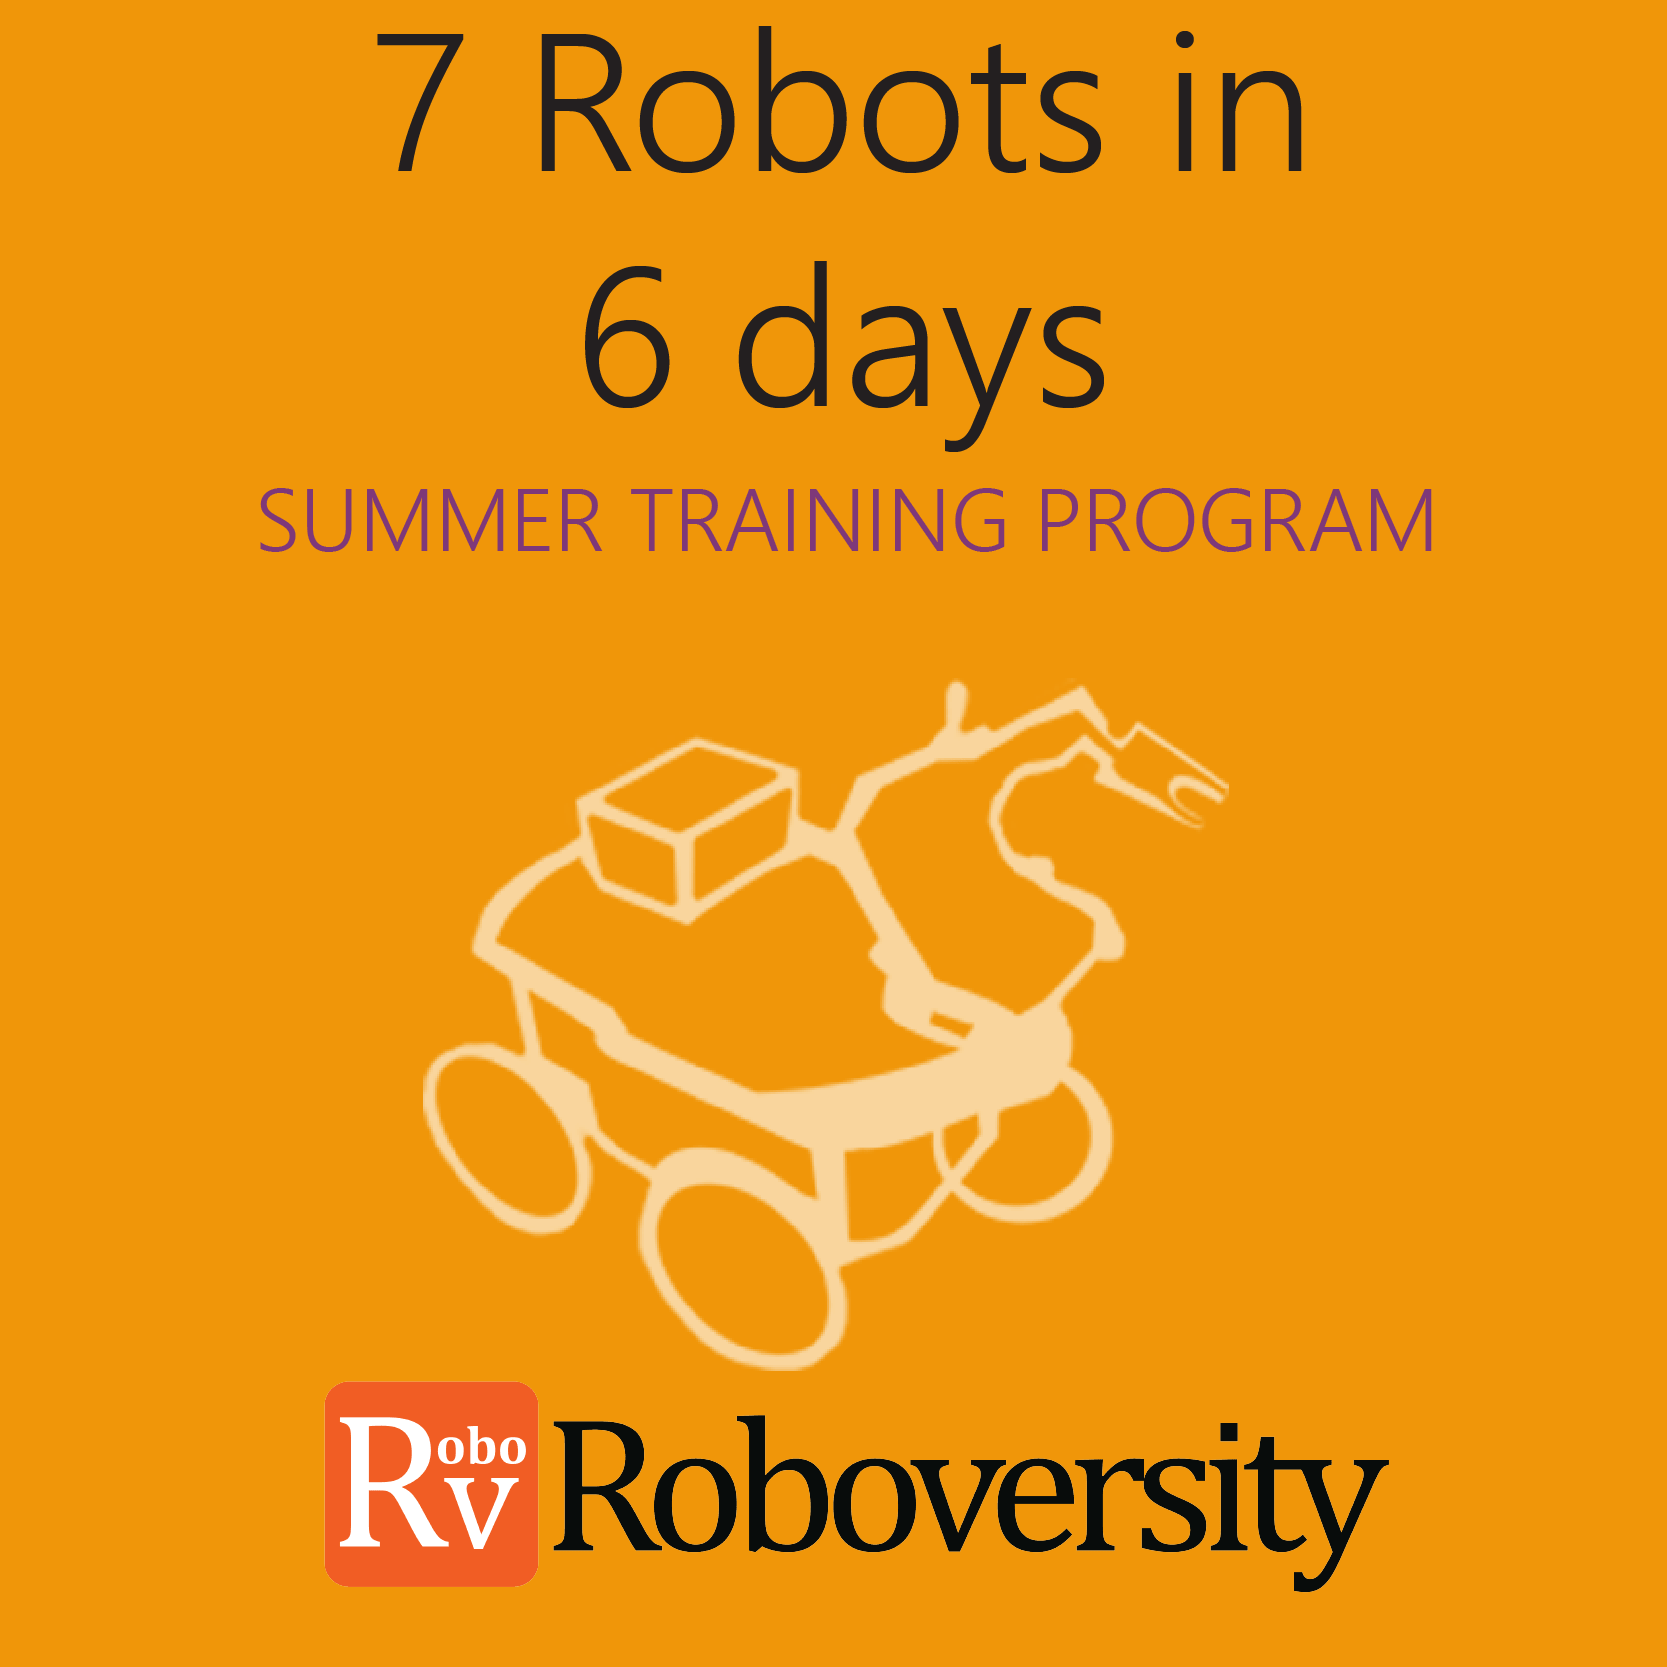 Summer Training Program in Robotics - 7 Robots in 6 Days  at Gandhipuram